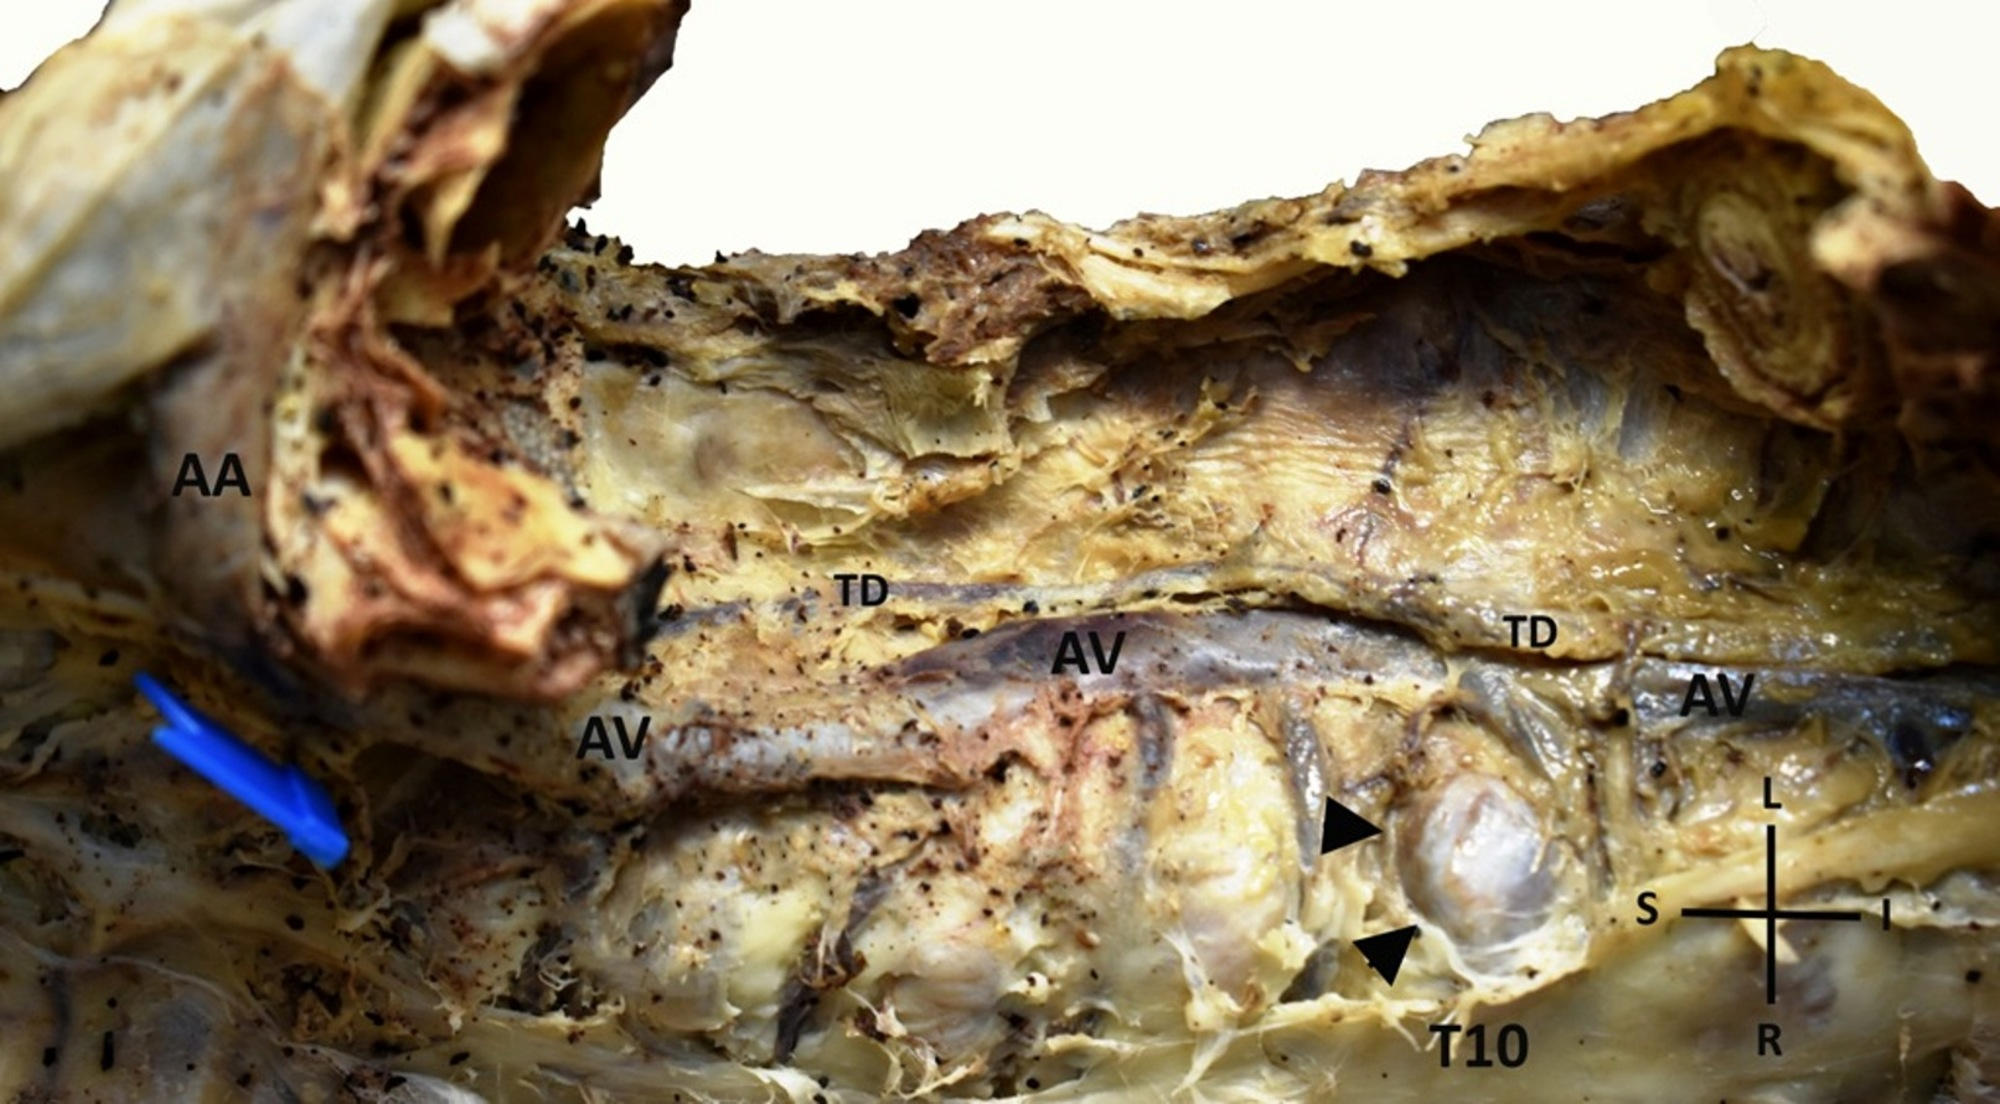 Cureus | A Left-sided Azygos Vein in a Cadaver: Anatomical and ...